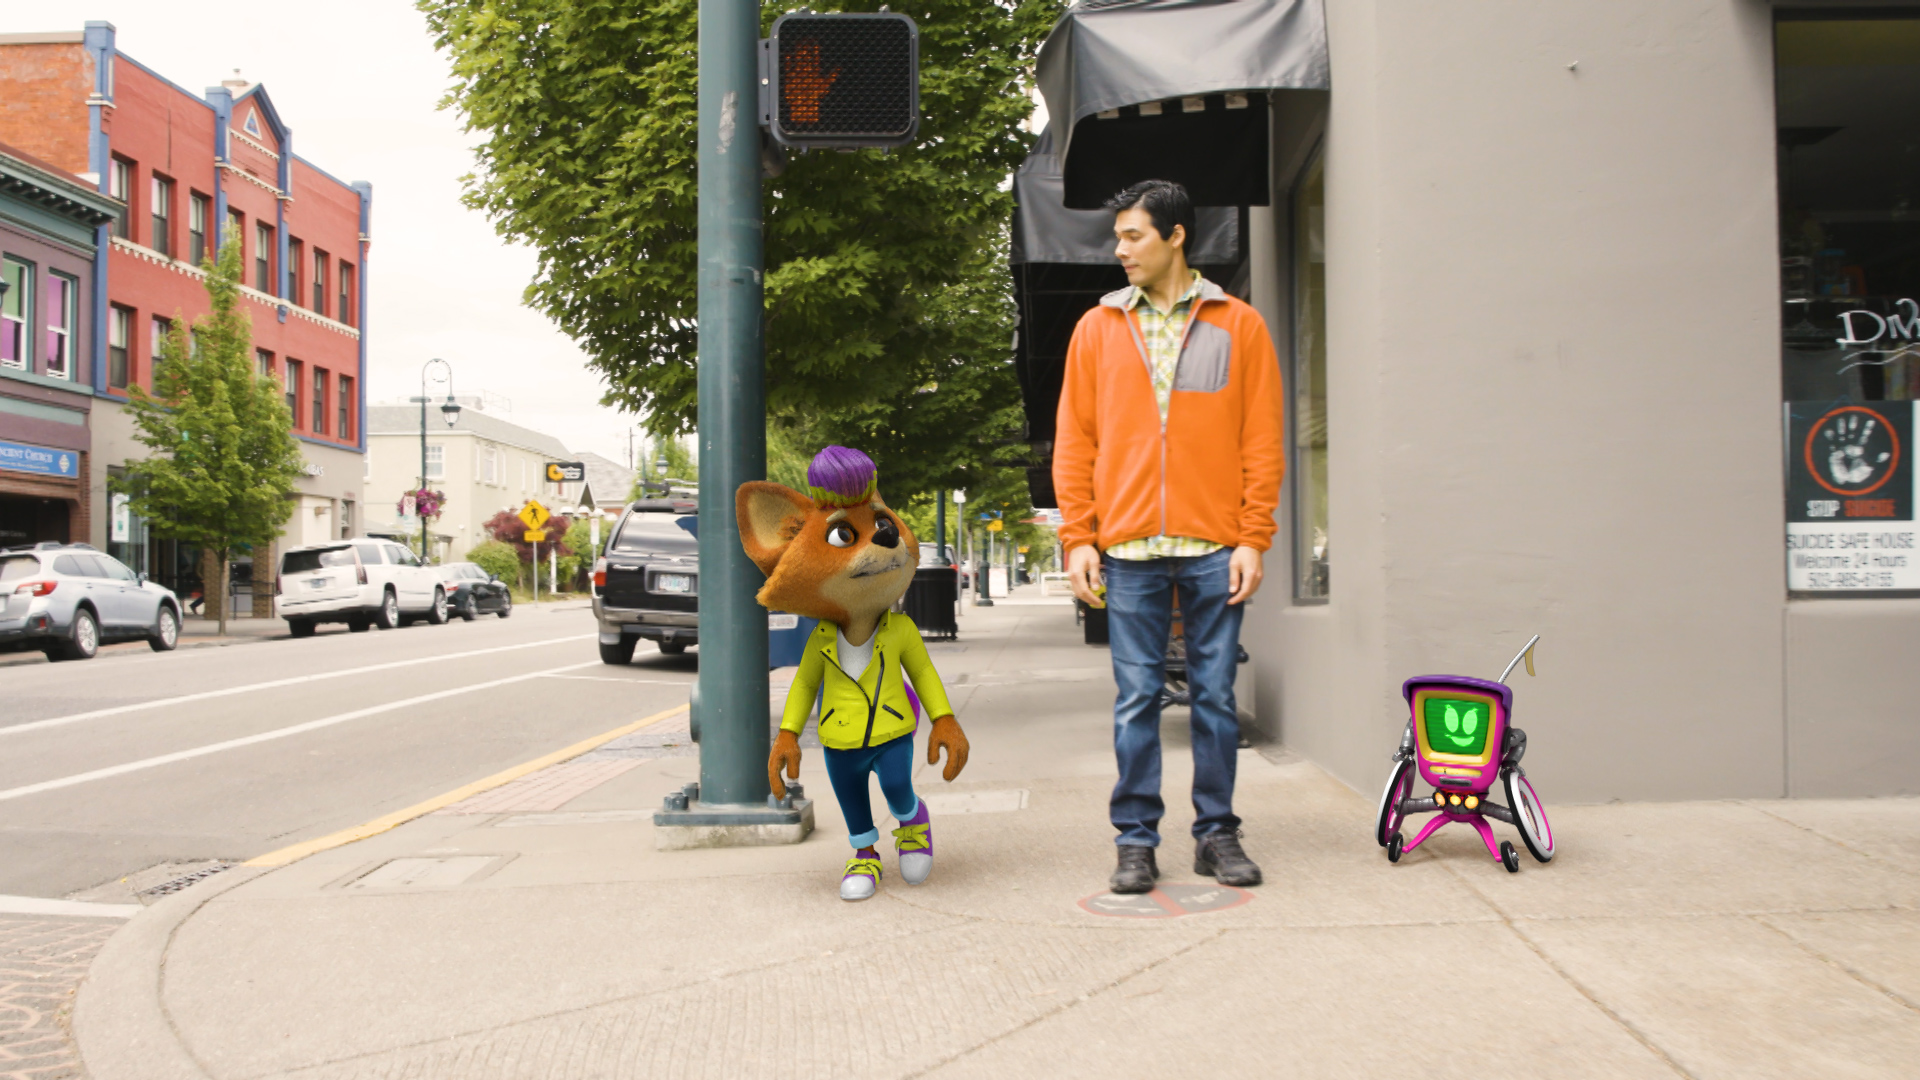 ODOT Pedestrian Safety 3D Animation Live Action Commercial